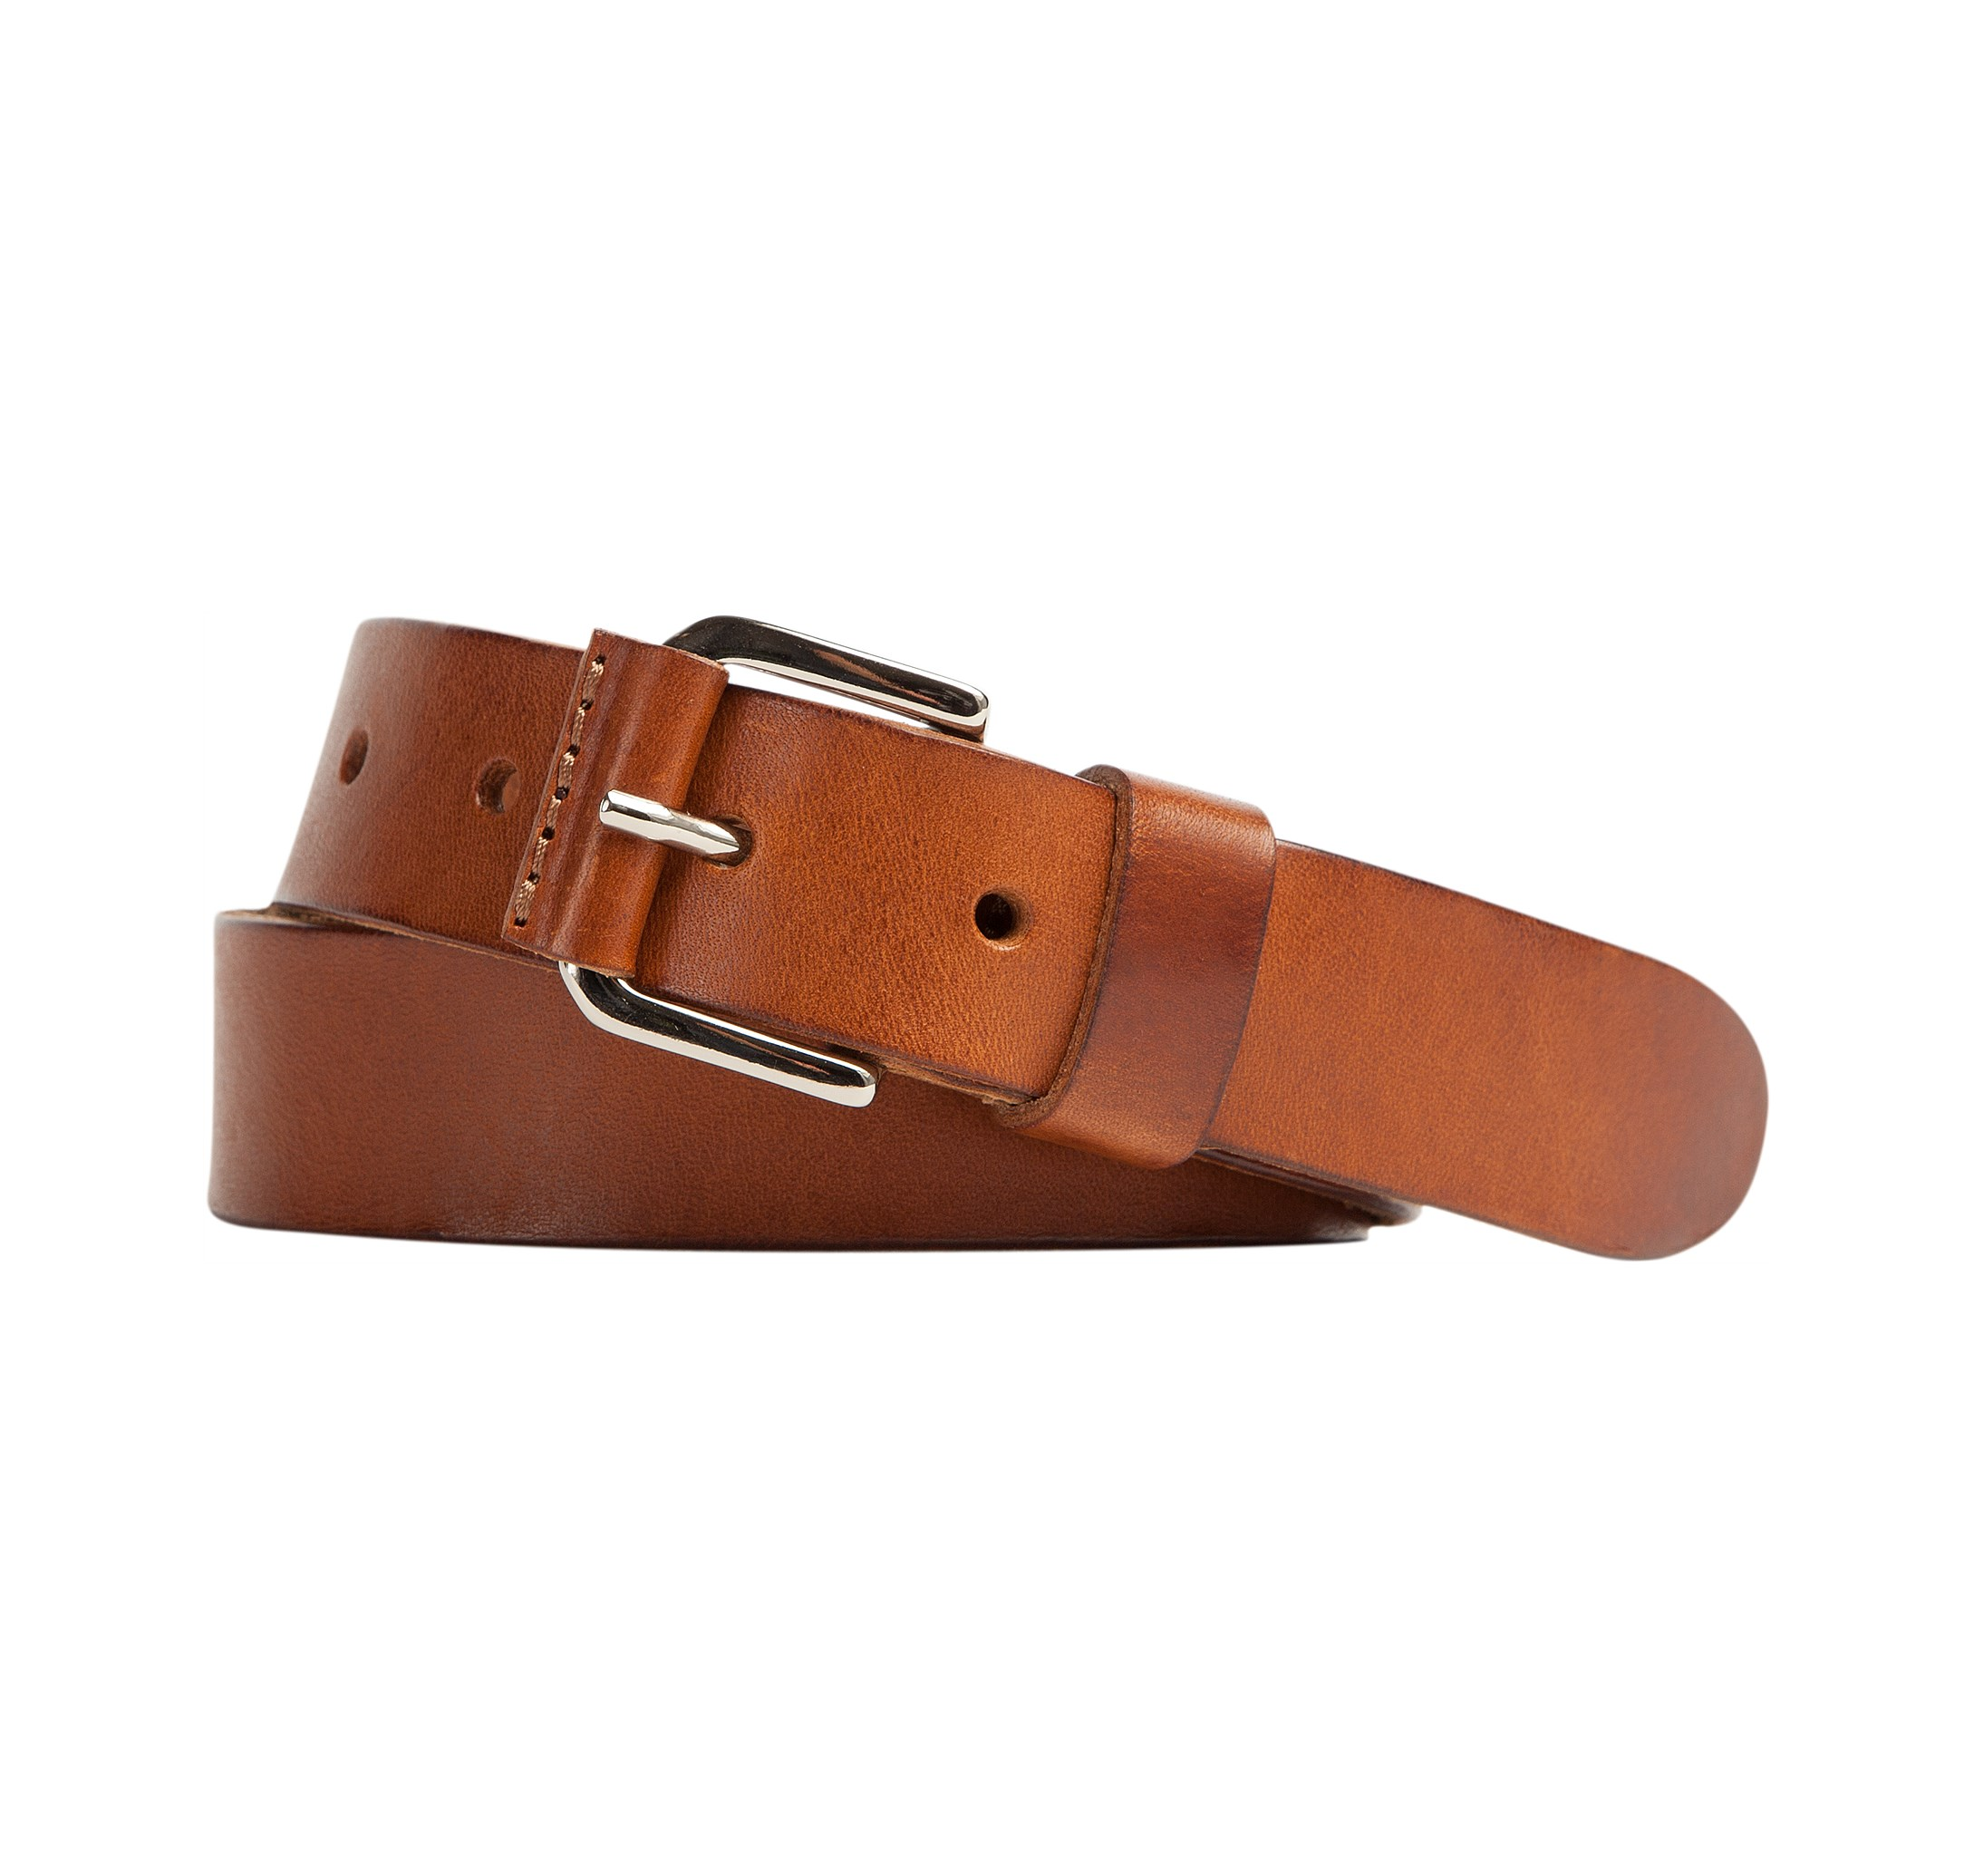 brown belt a15217 suitsupply store